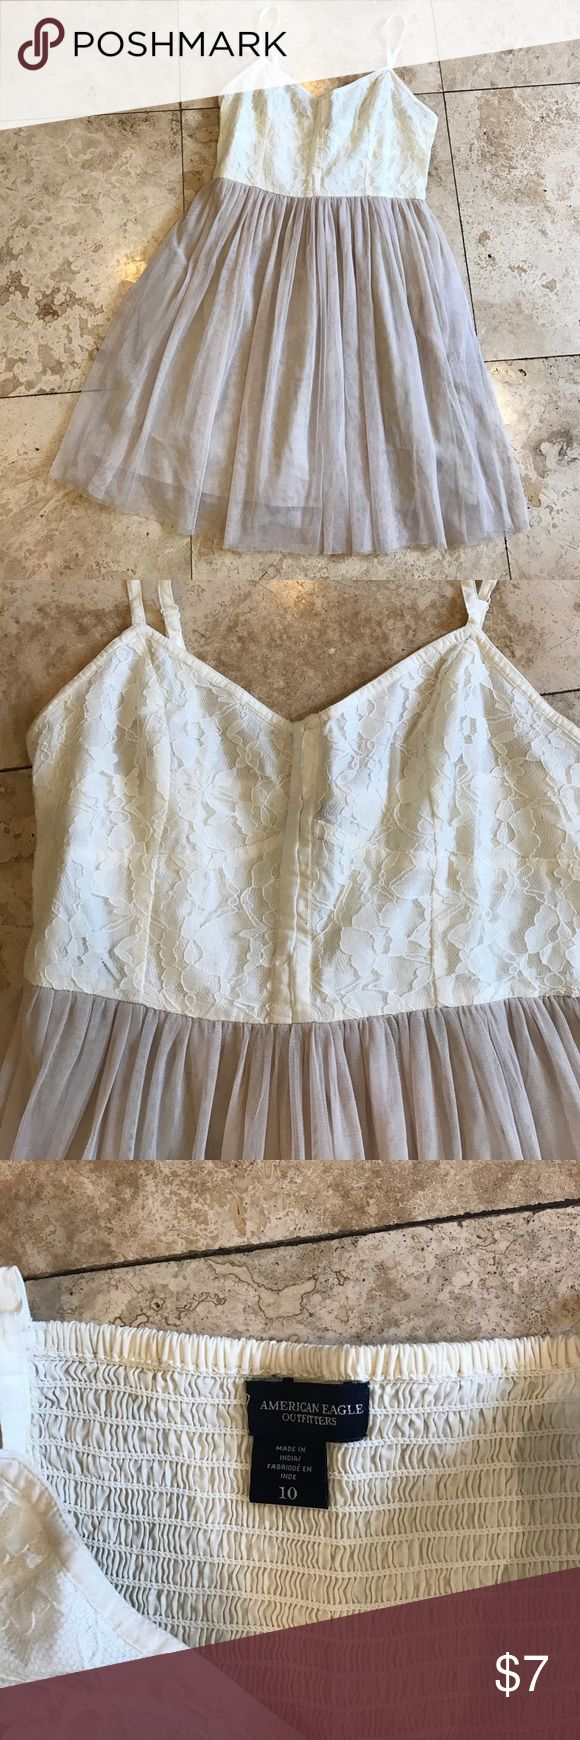 American Eagle Outfitters flirty dress. Size 10 Toile skirt with cotton and lace overlay top. Ballerina style taupe and cream American Eagle Outfitters Dresses Mini